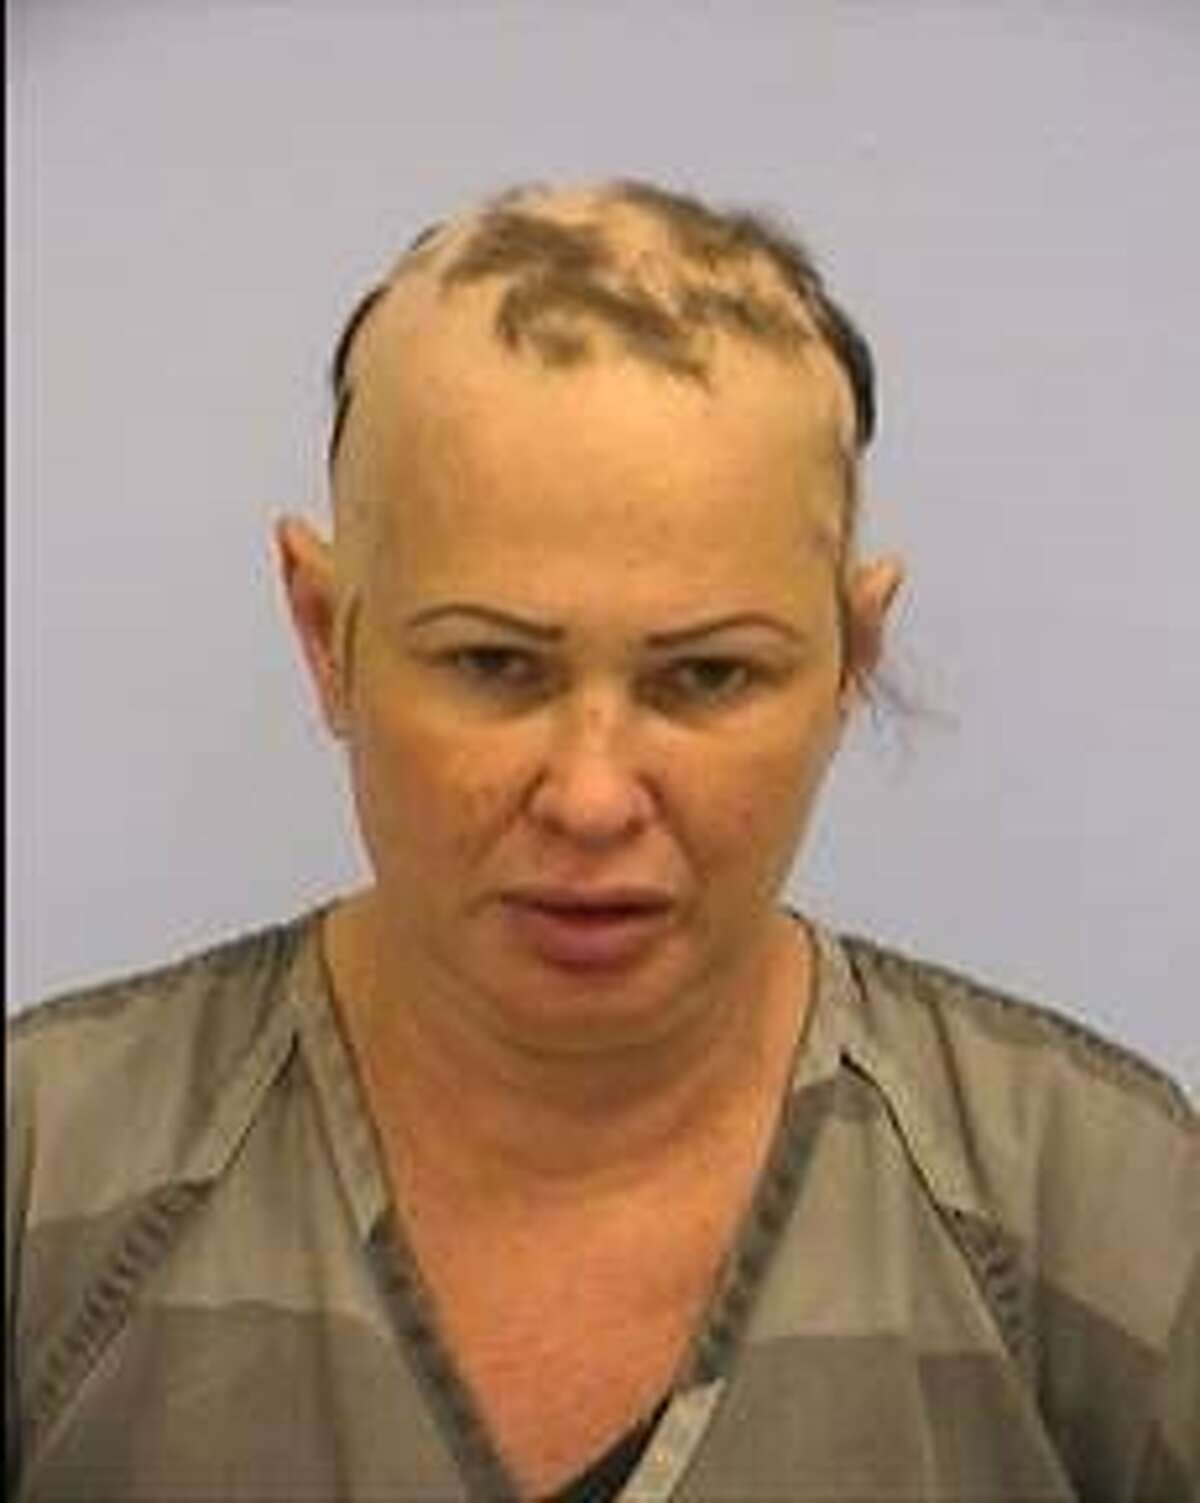 Michelle Crawford, 45, faces a second-degree felony charge of robbery after she allegedly robbed a Wells Fargo in Austin.